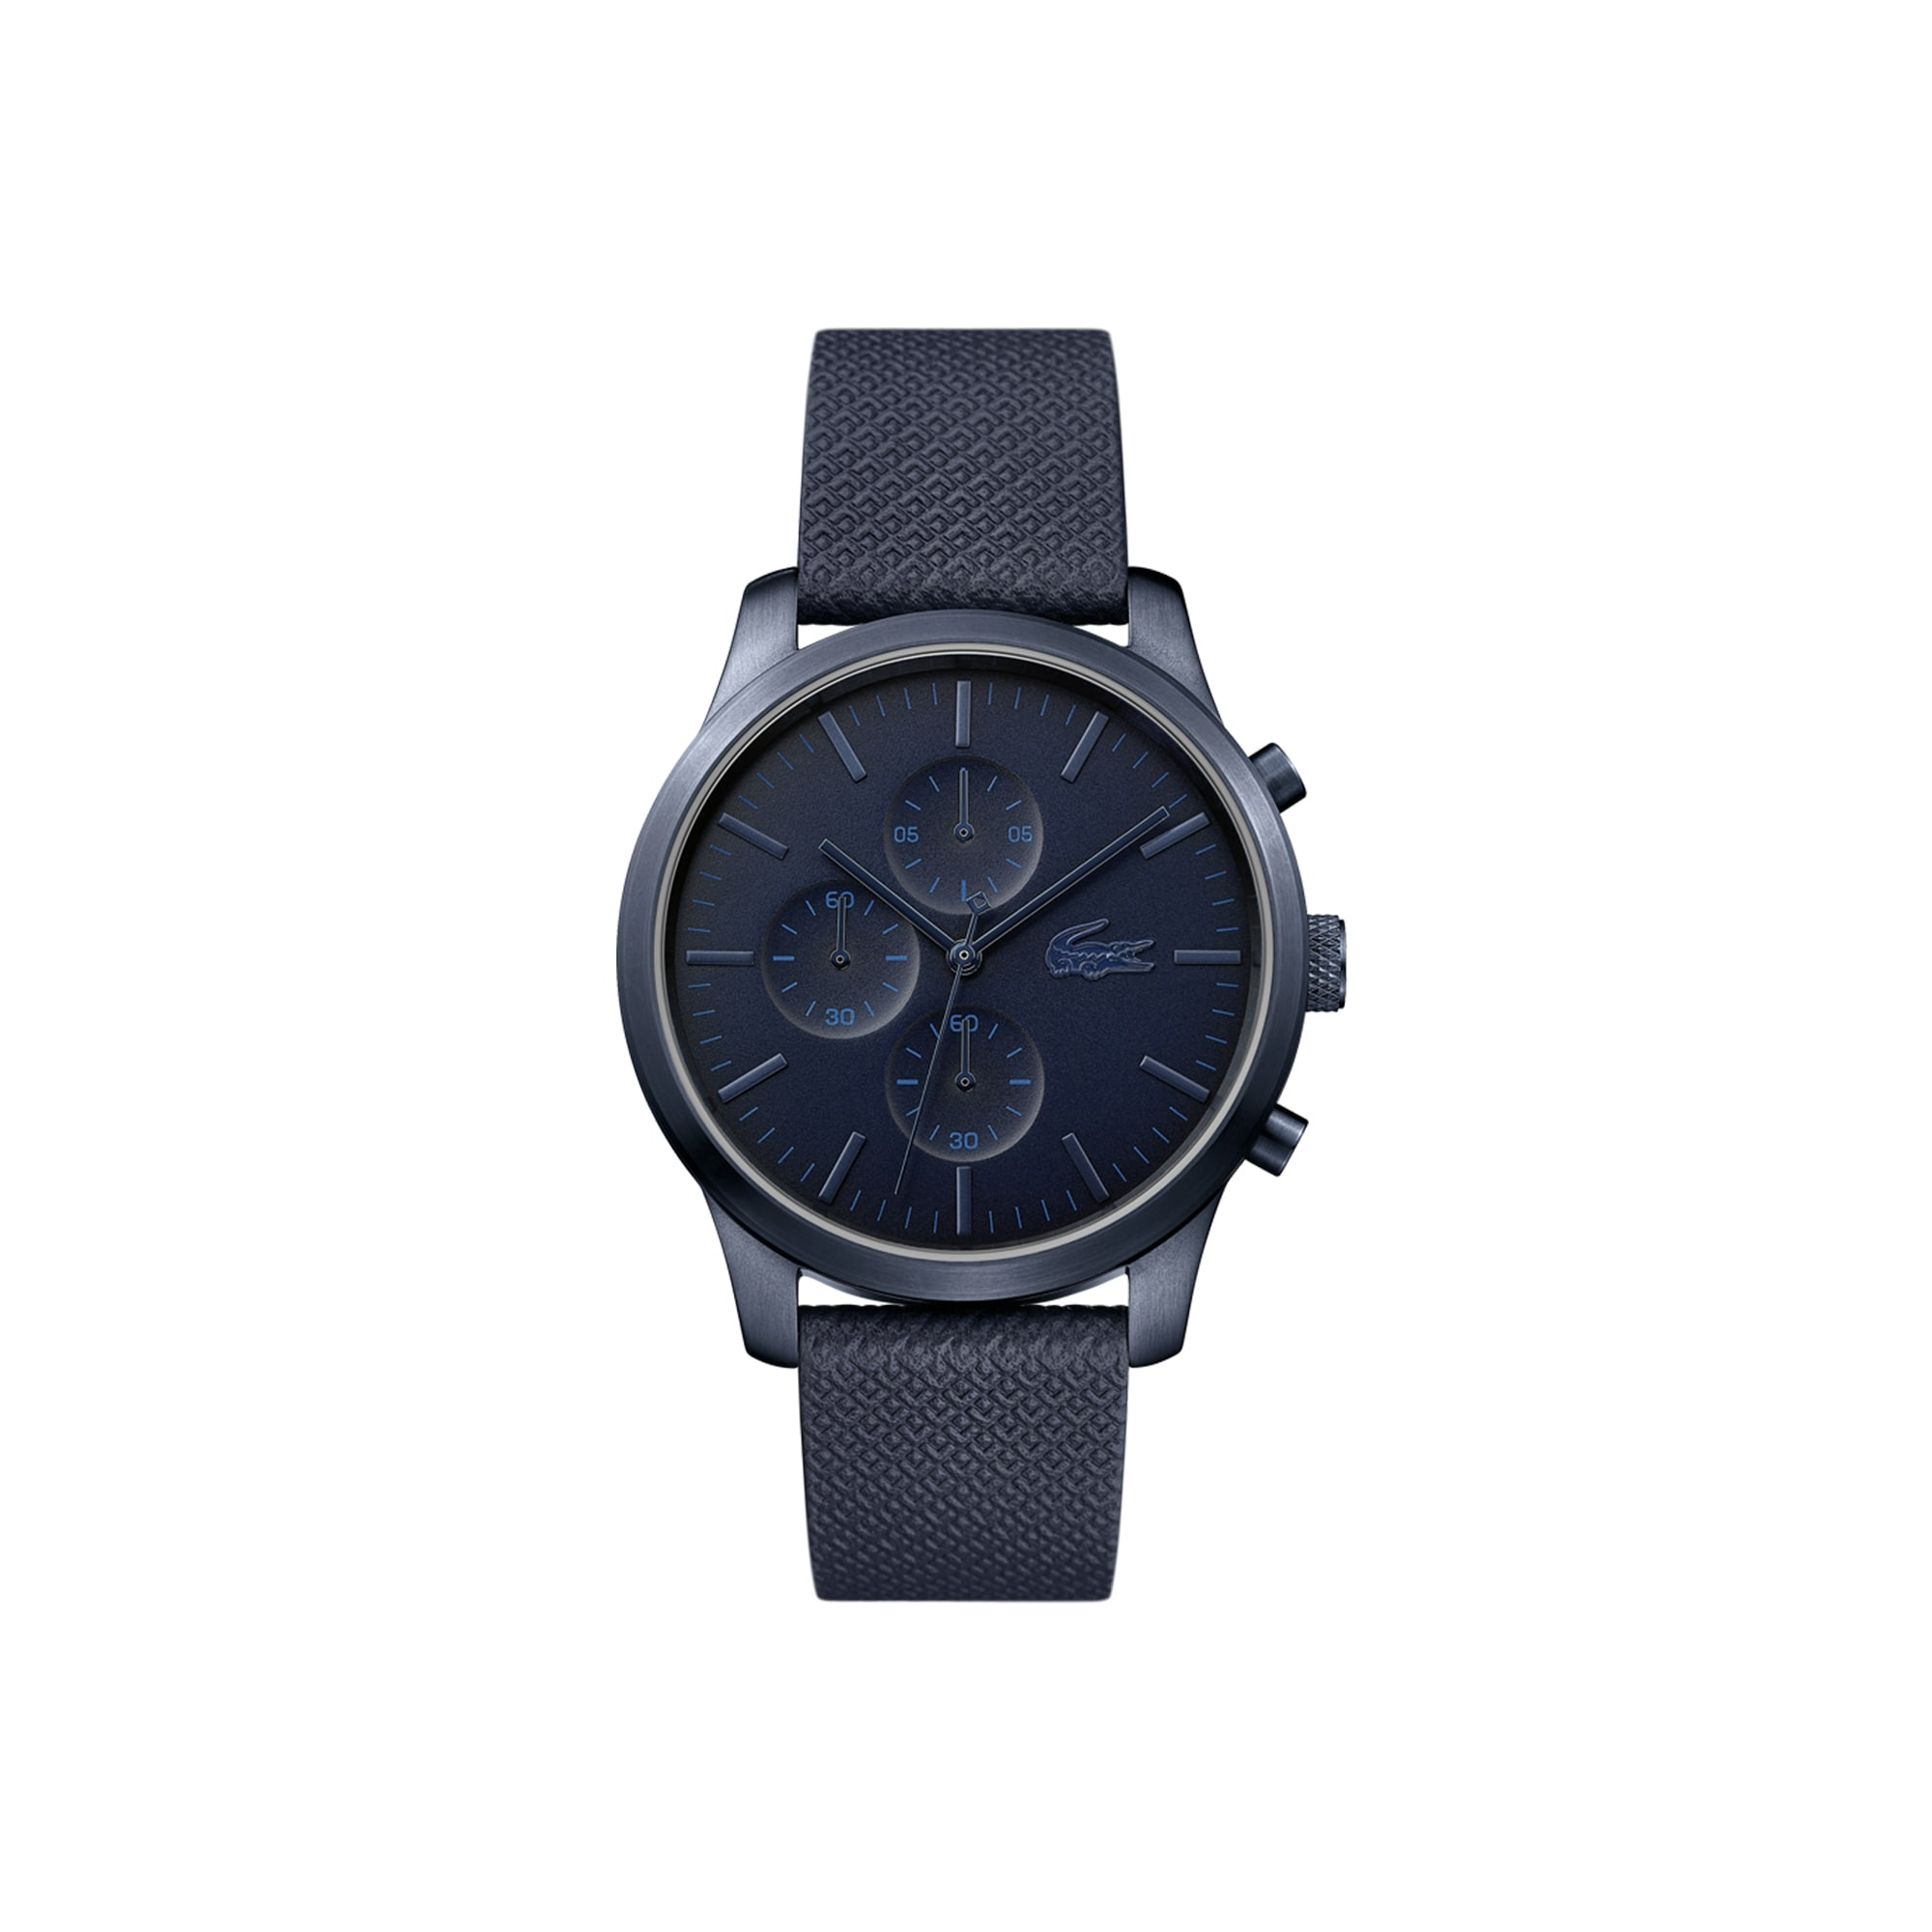 Men's Lacoste 12.12 Chronograph Watch 85th Anniversary with Blue...